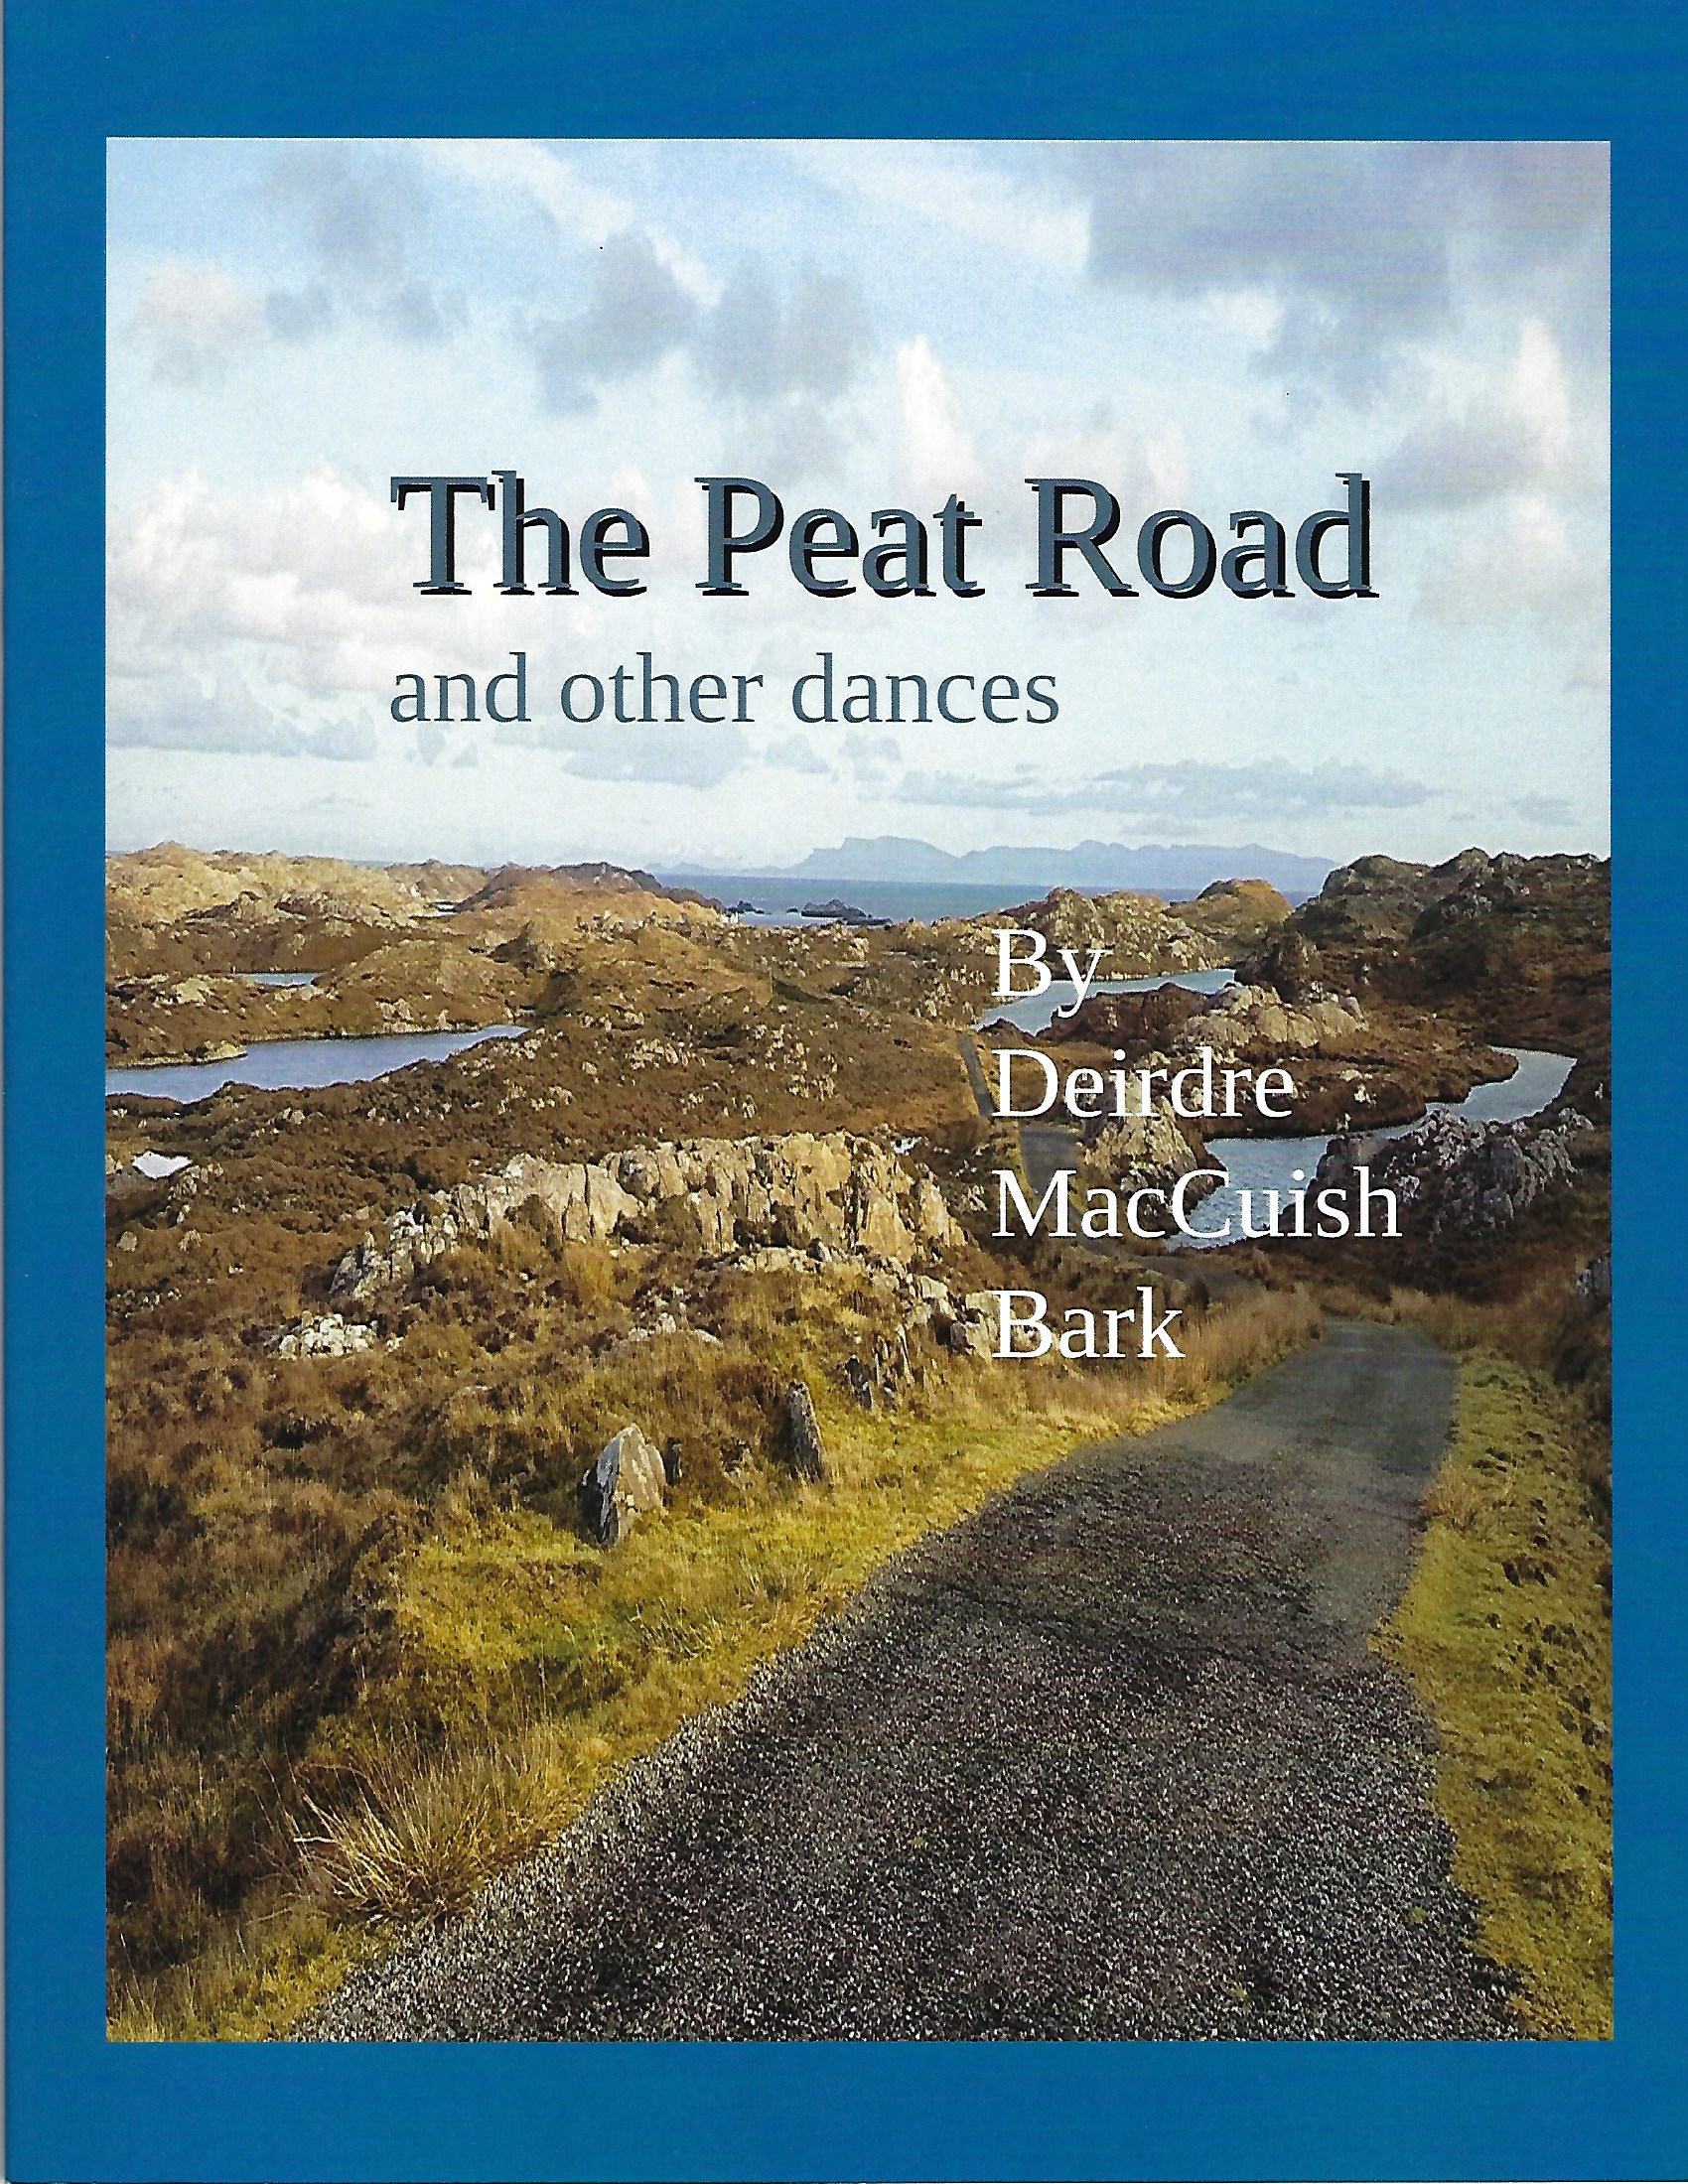 The Peat Road by Deirdrie MacCuish Bark